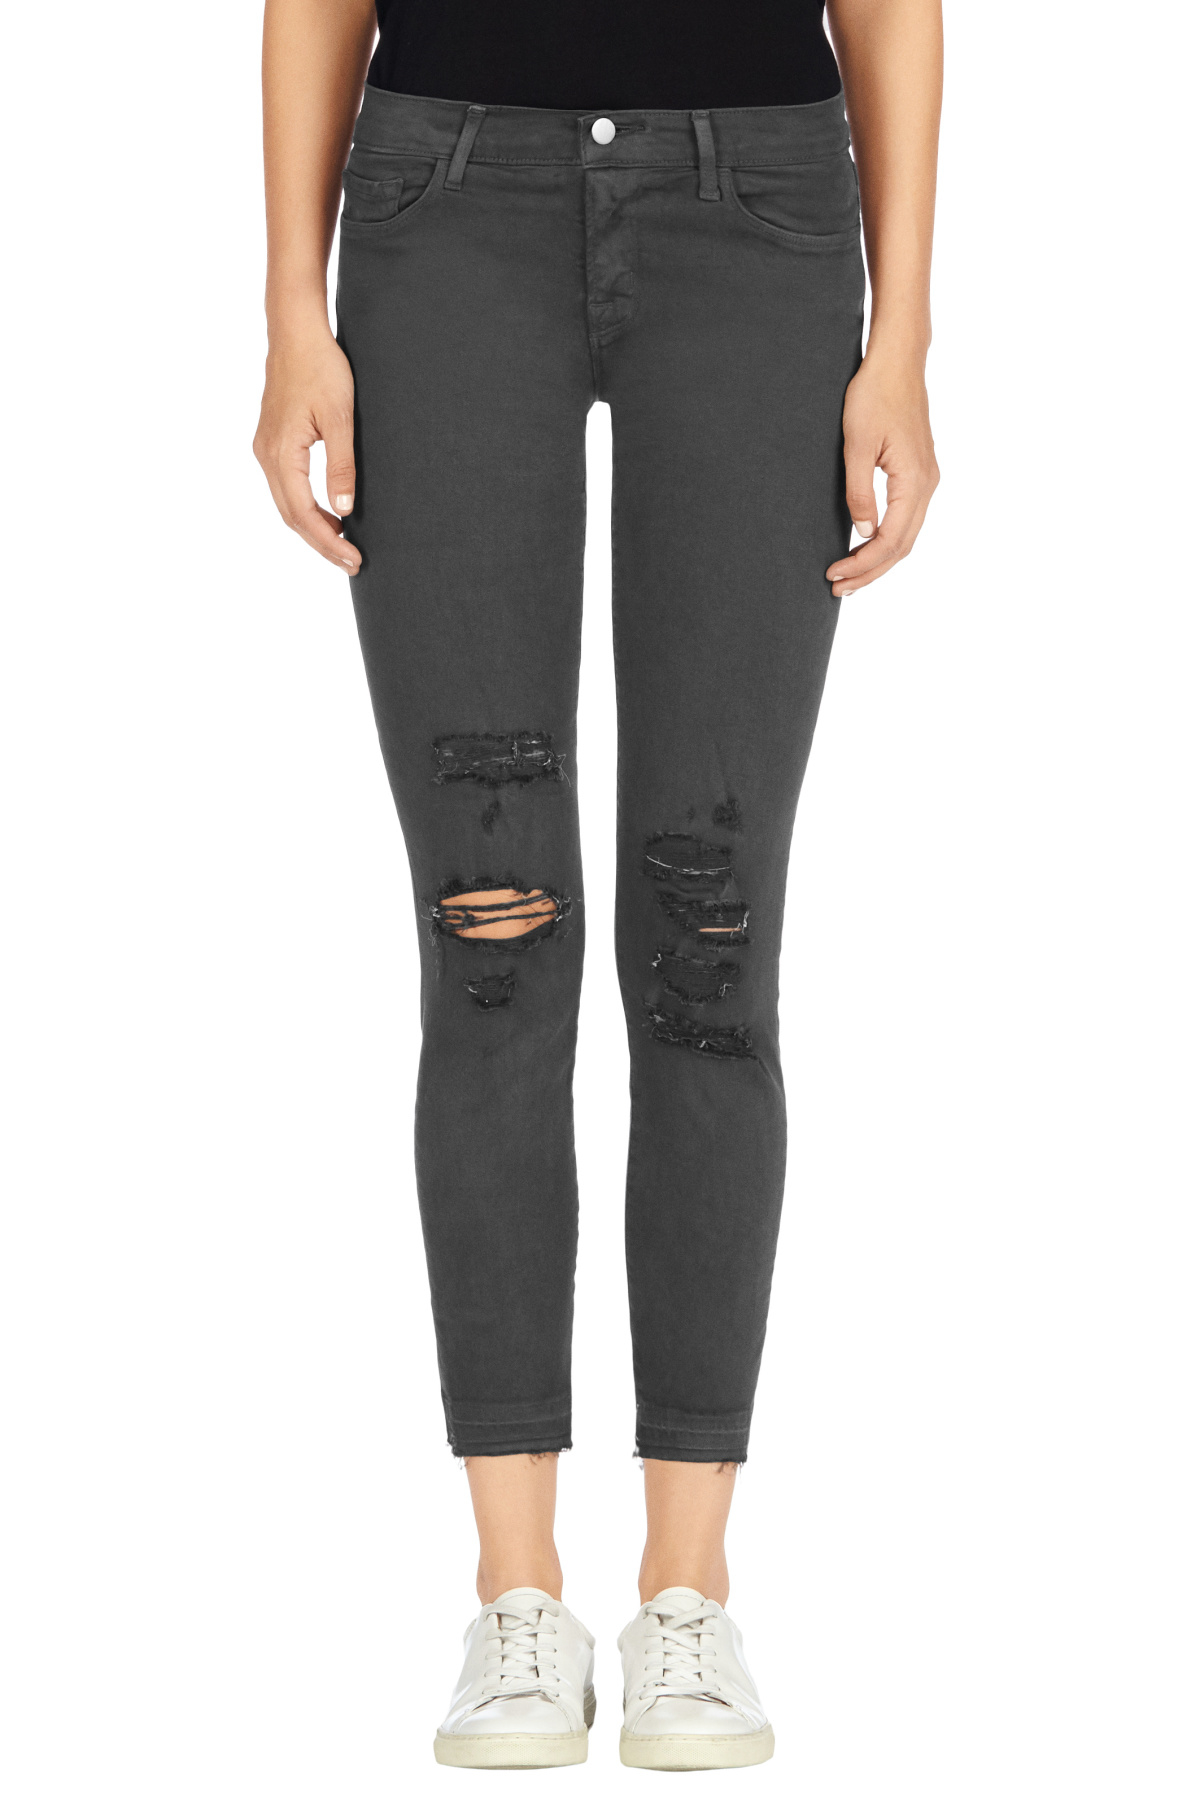 J brand Low-rise Cropped Skinny In Demented Grey in Gray | Lyst